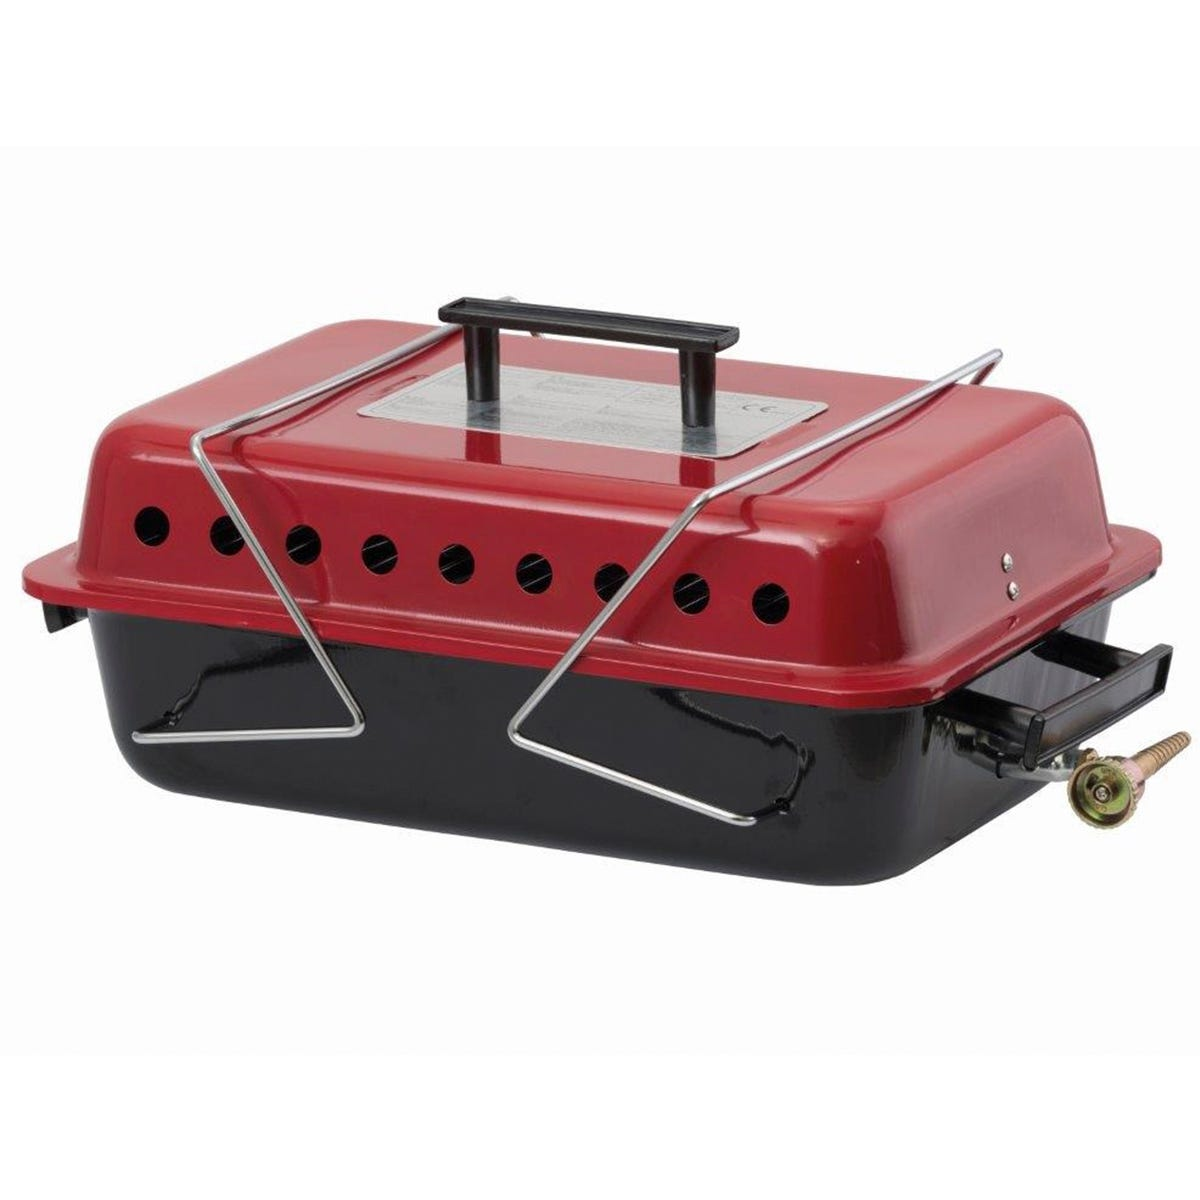 Lifestyle Appliances Portable Gas Camping BBQ with Lava Rocks